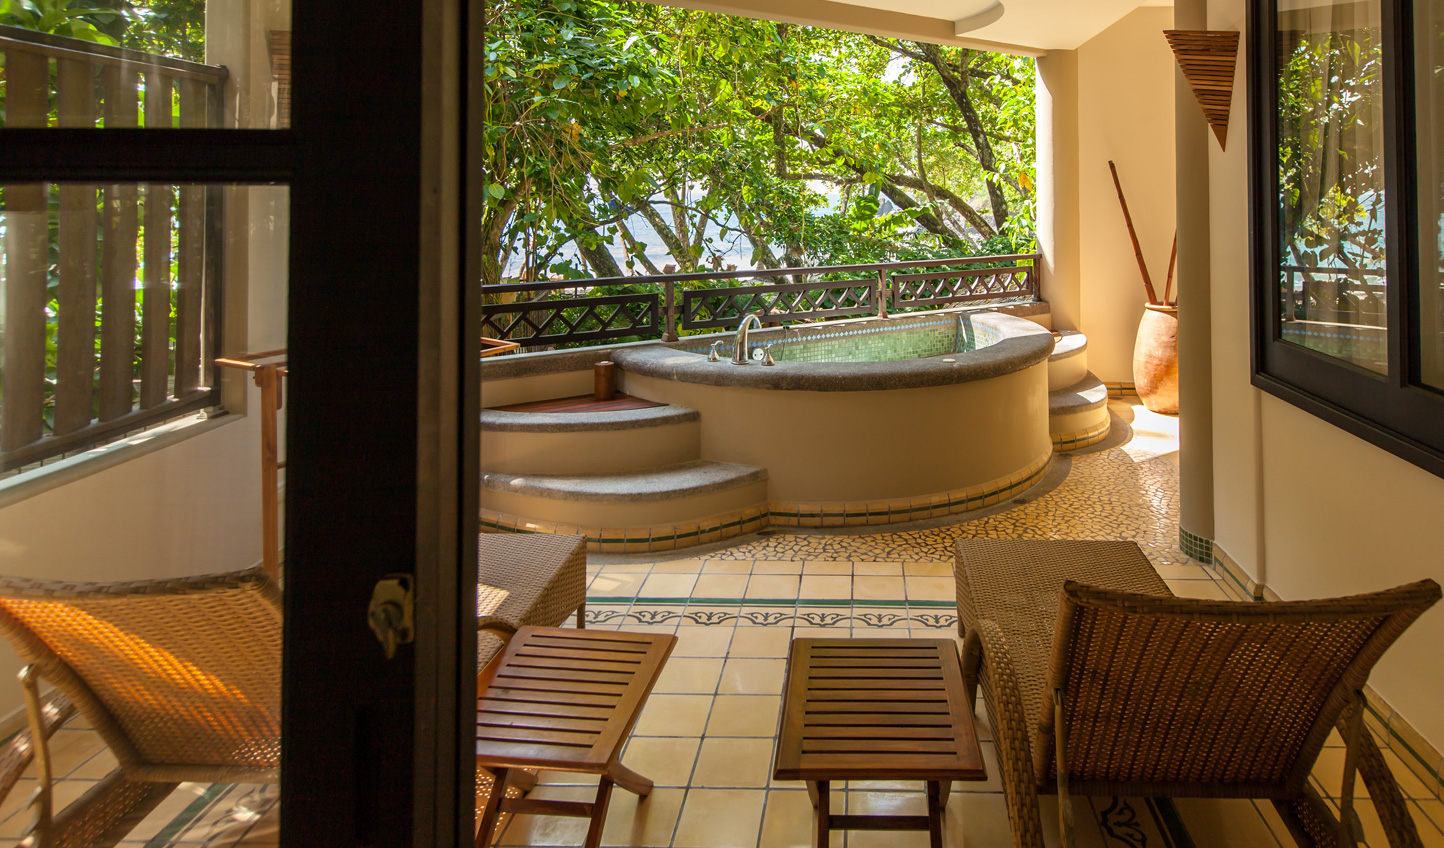 Recline in the tub and look out over the ocean